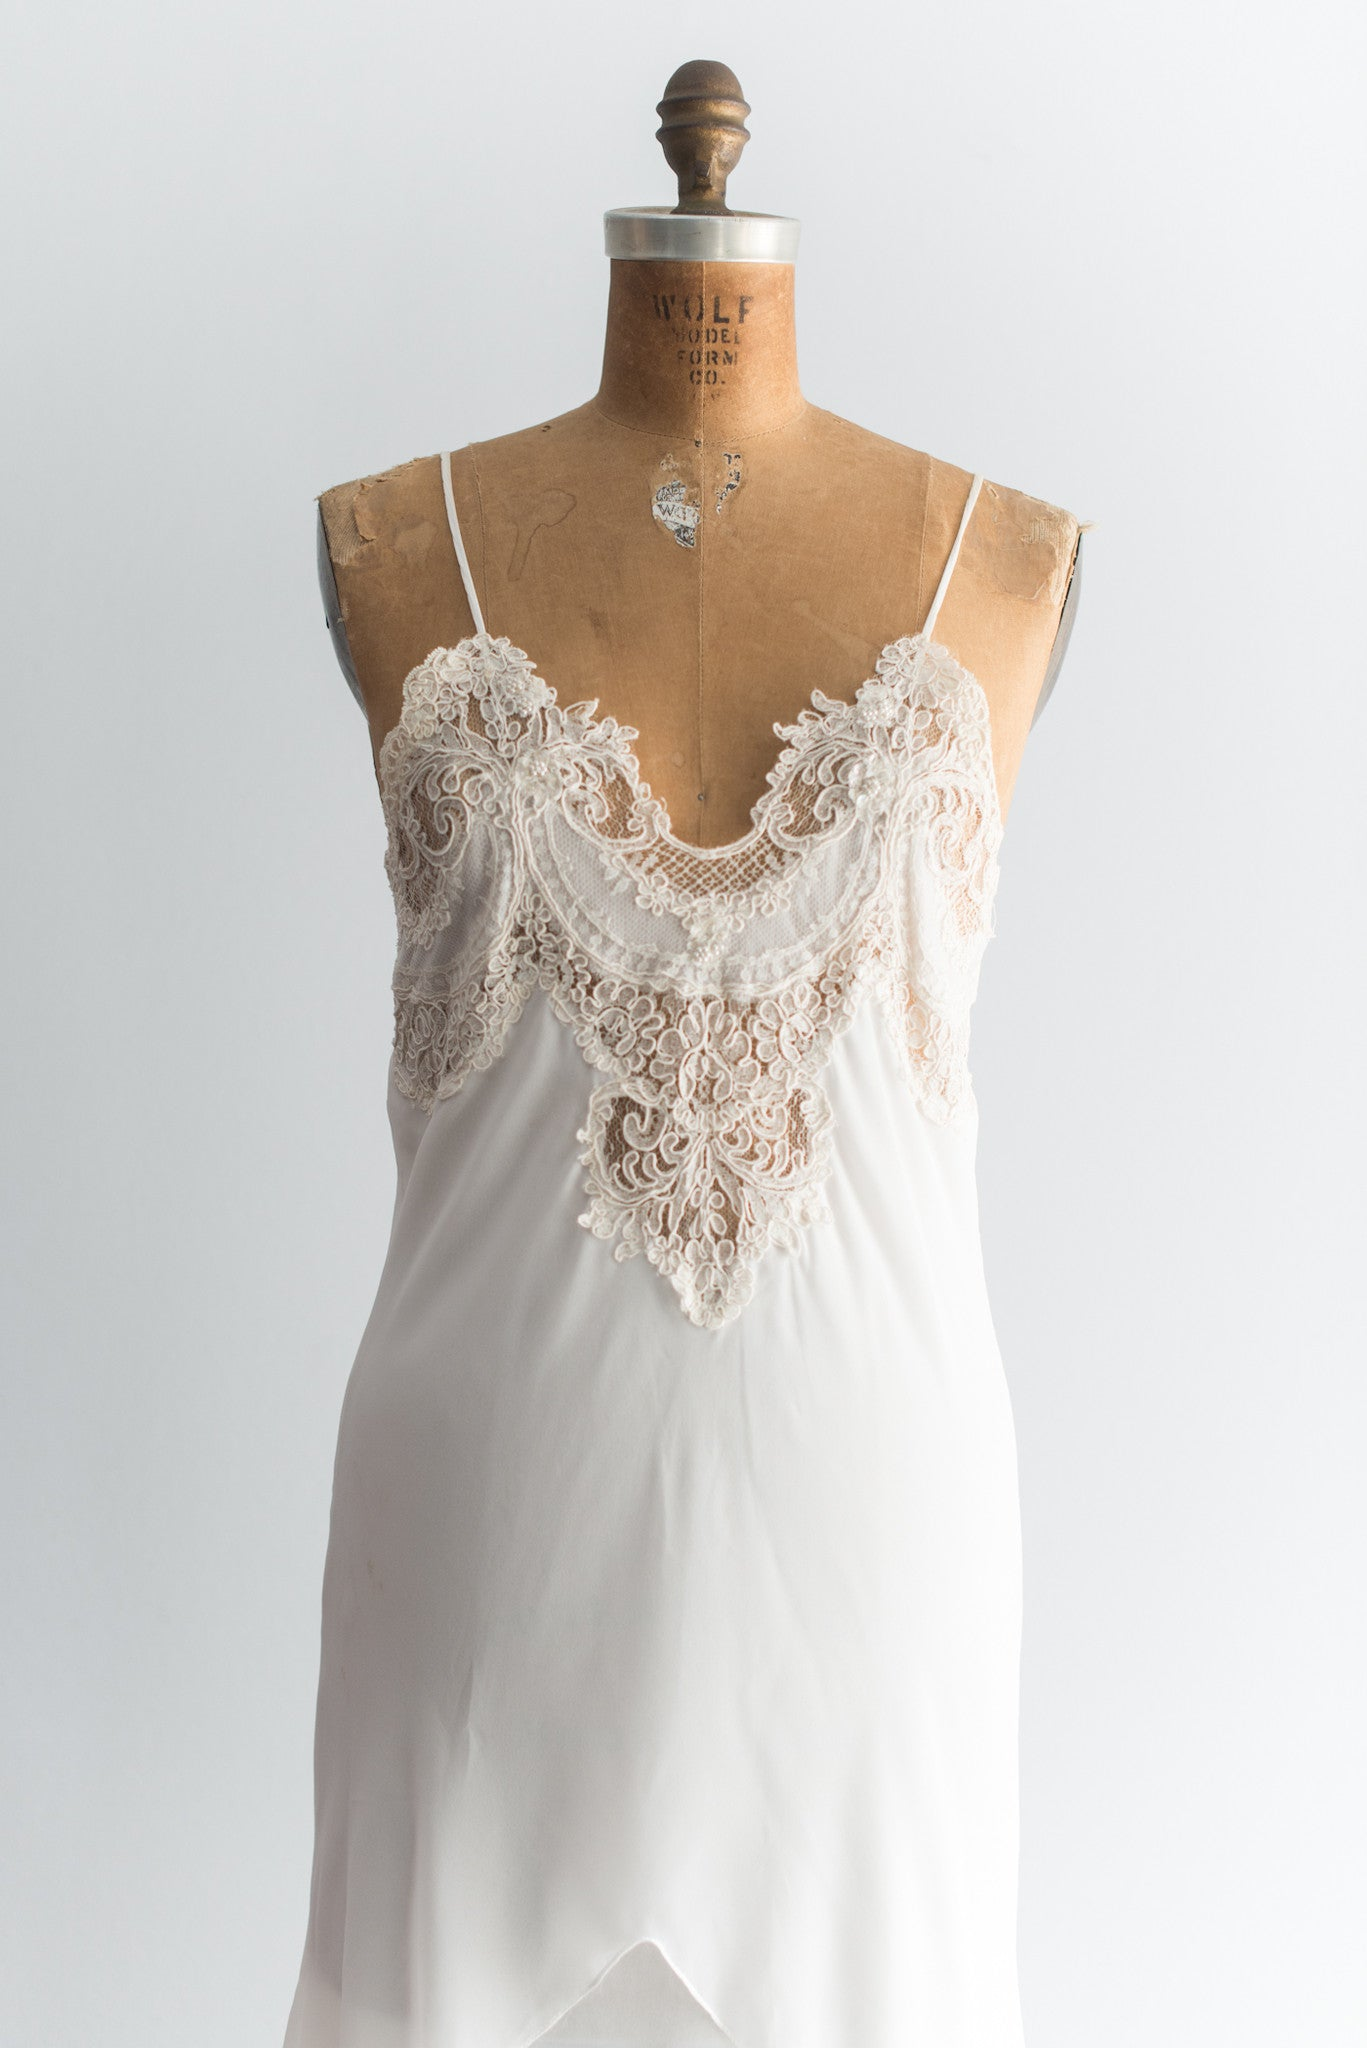 Direct Import Home Decor Vintage Chiffon And Lace Negligee S M G O S S A M E R